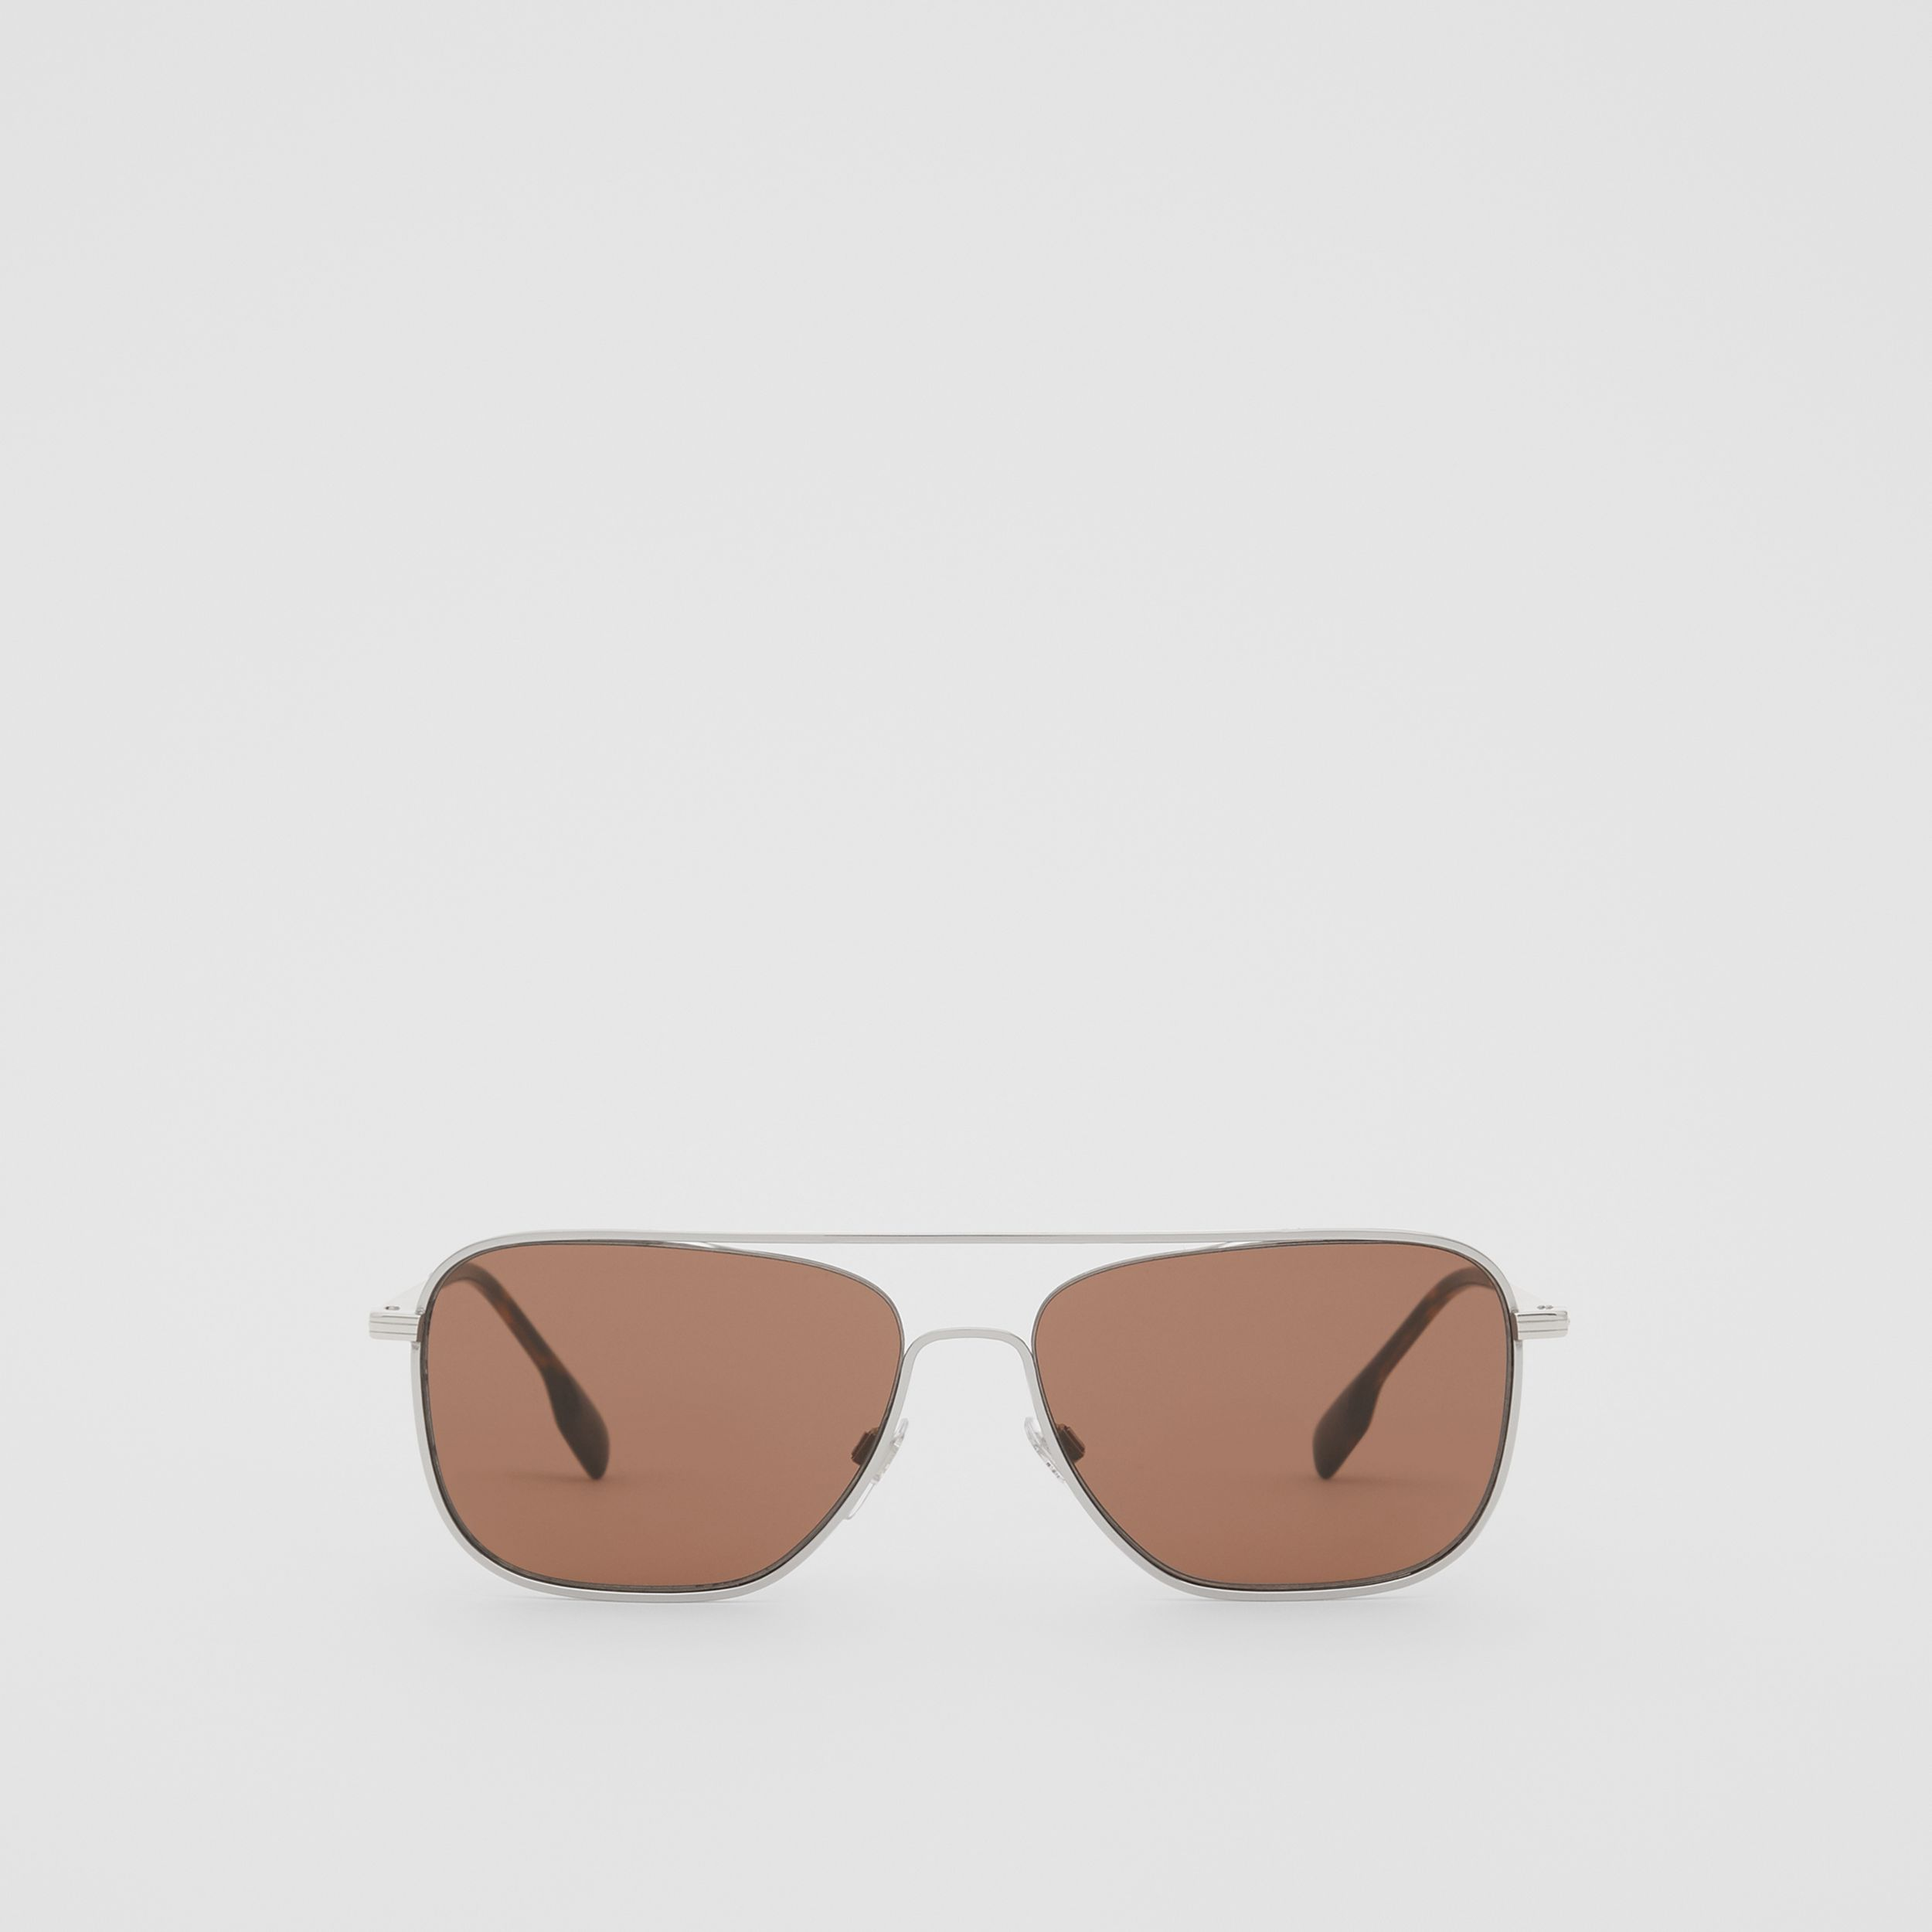 Top Bar Detail Square Frame Sunglasses in Gold - Men | Burberry - 1